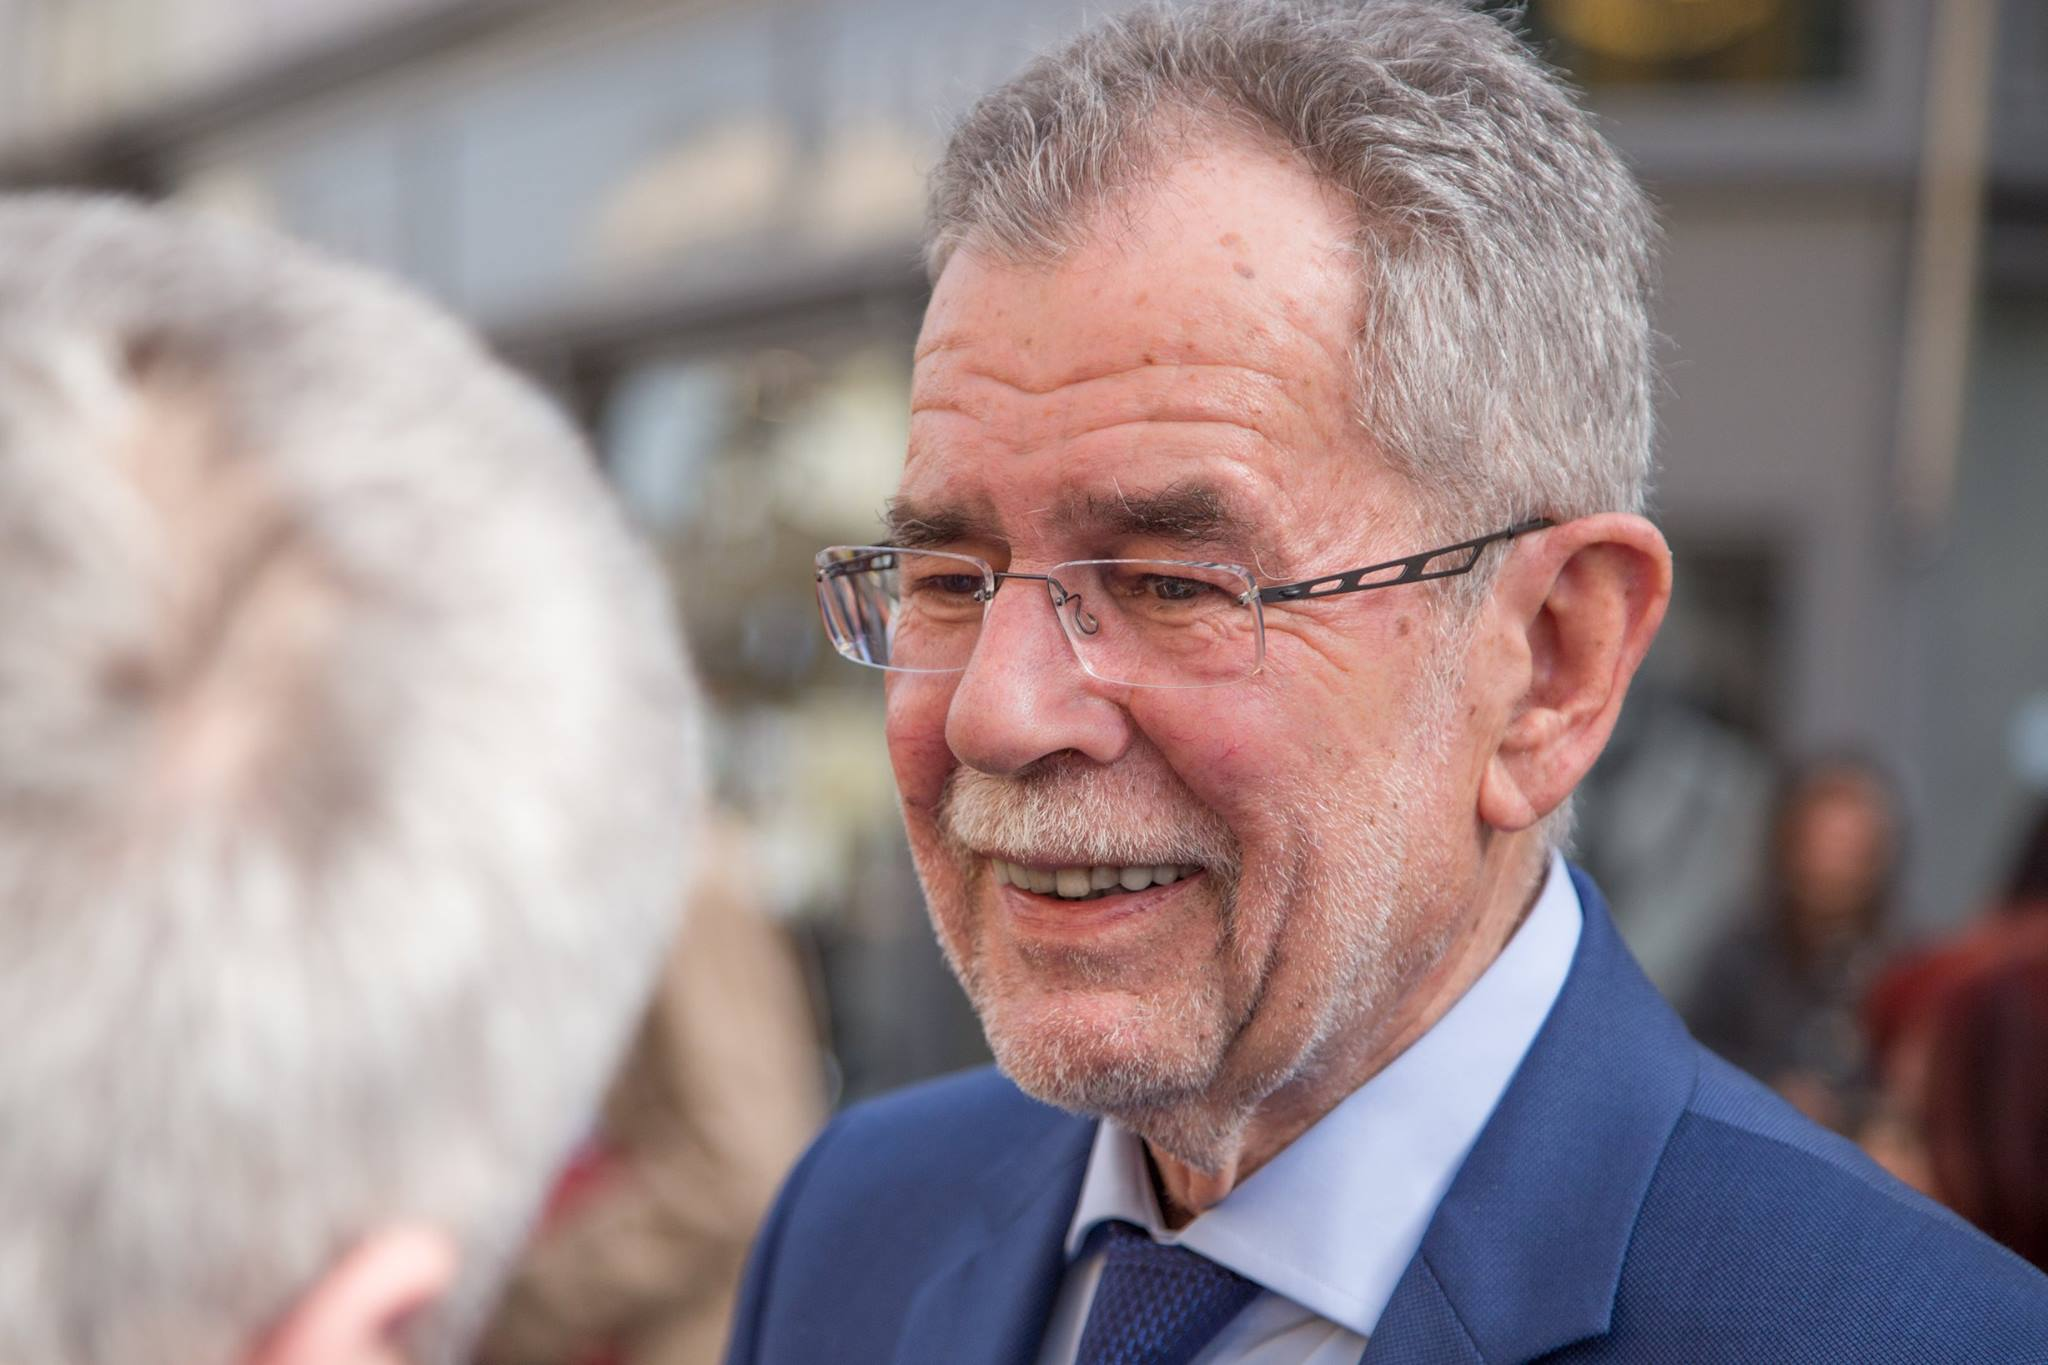 Independent challenger Alexander Van der Bellen, a former spokesman for Austrian's Greens, hopes to surpass the Freedom Party in a May 22 runoff. (Facebook)